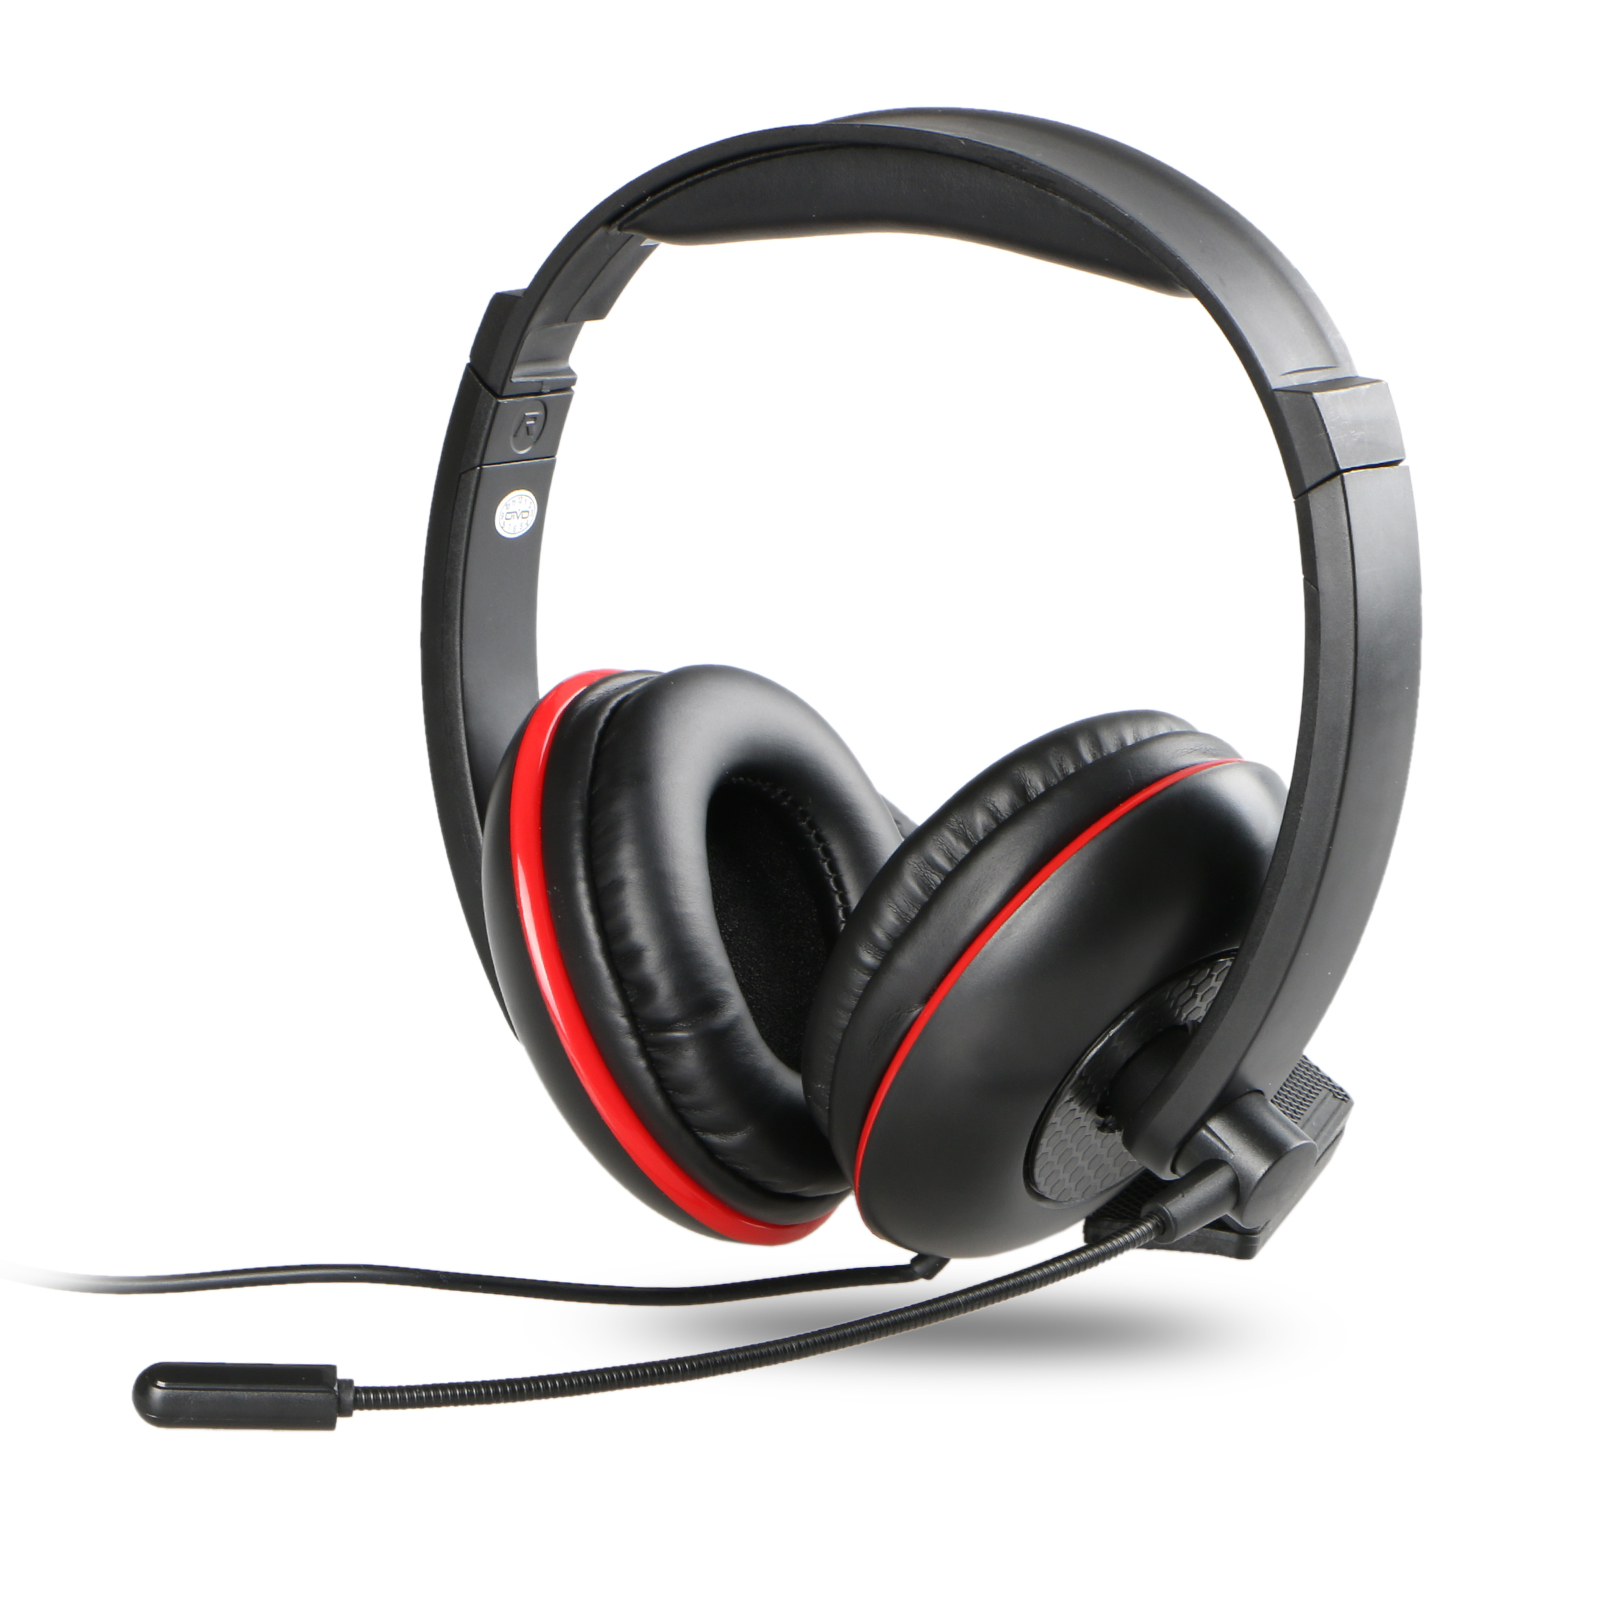 TSV Wired Gaming Microphone Headset With Audio Control For Xbox Playstation Laptop Computers